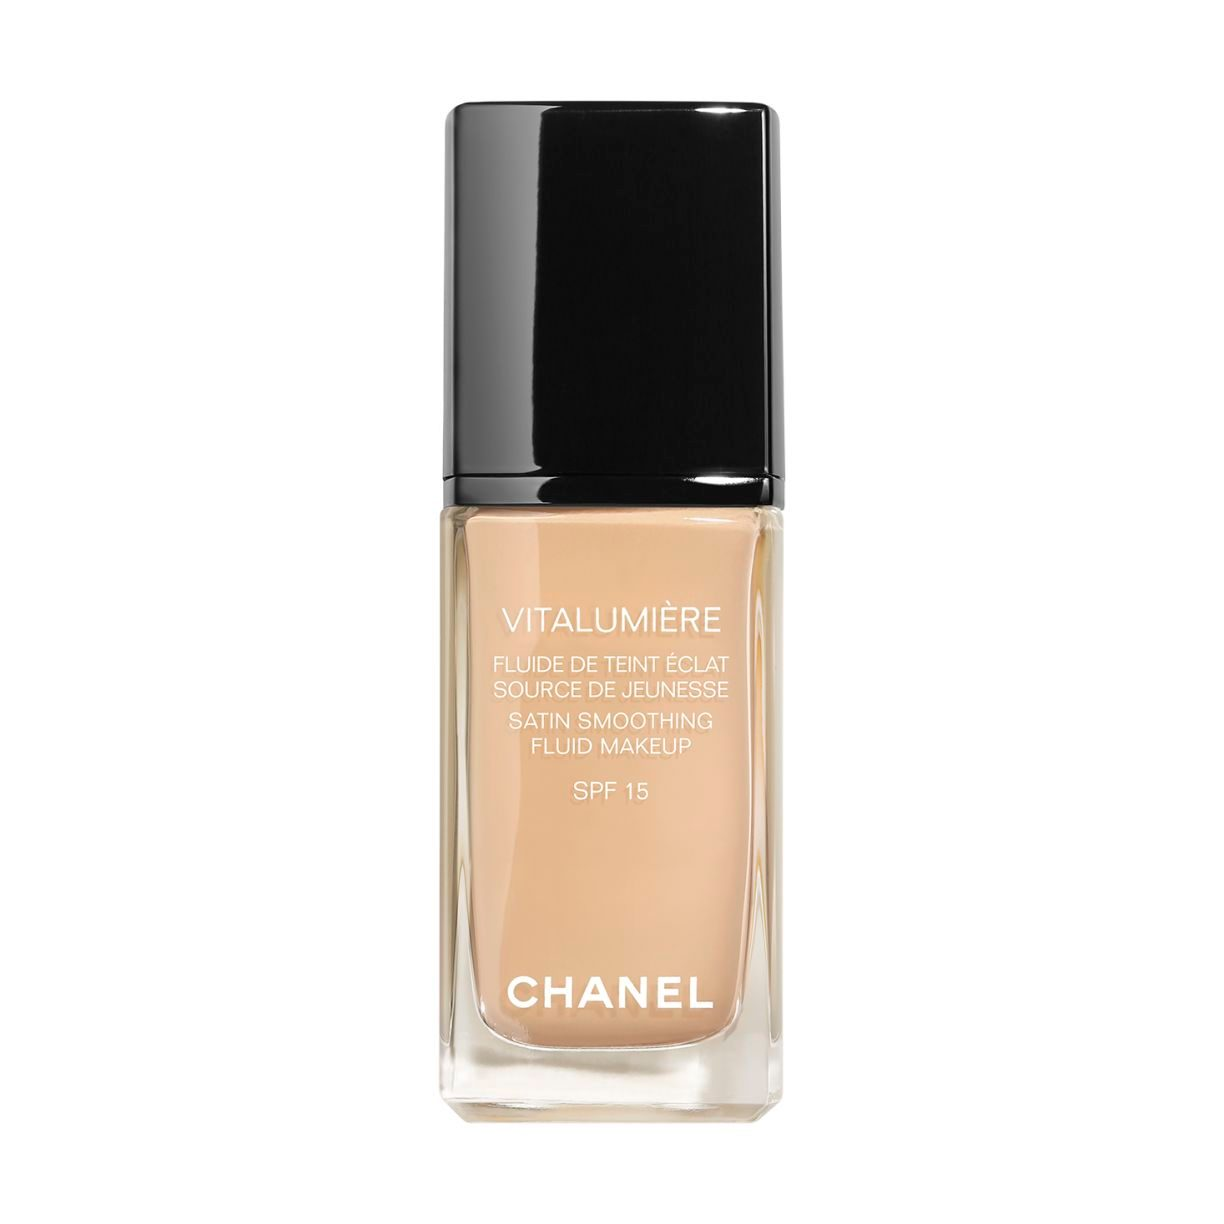 Makeup complexion chanel powders base foundations for Givenchy teint miroir lift comfort